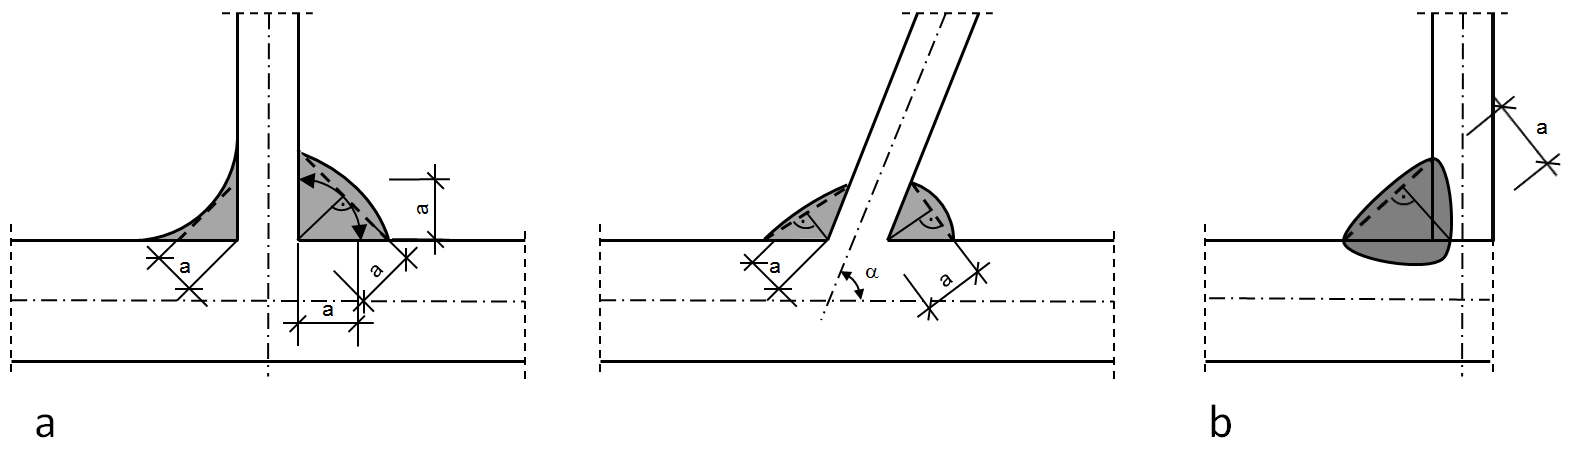 Fillet weld thickness a at normal penetration (a) and at deep penetration (b)